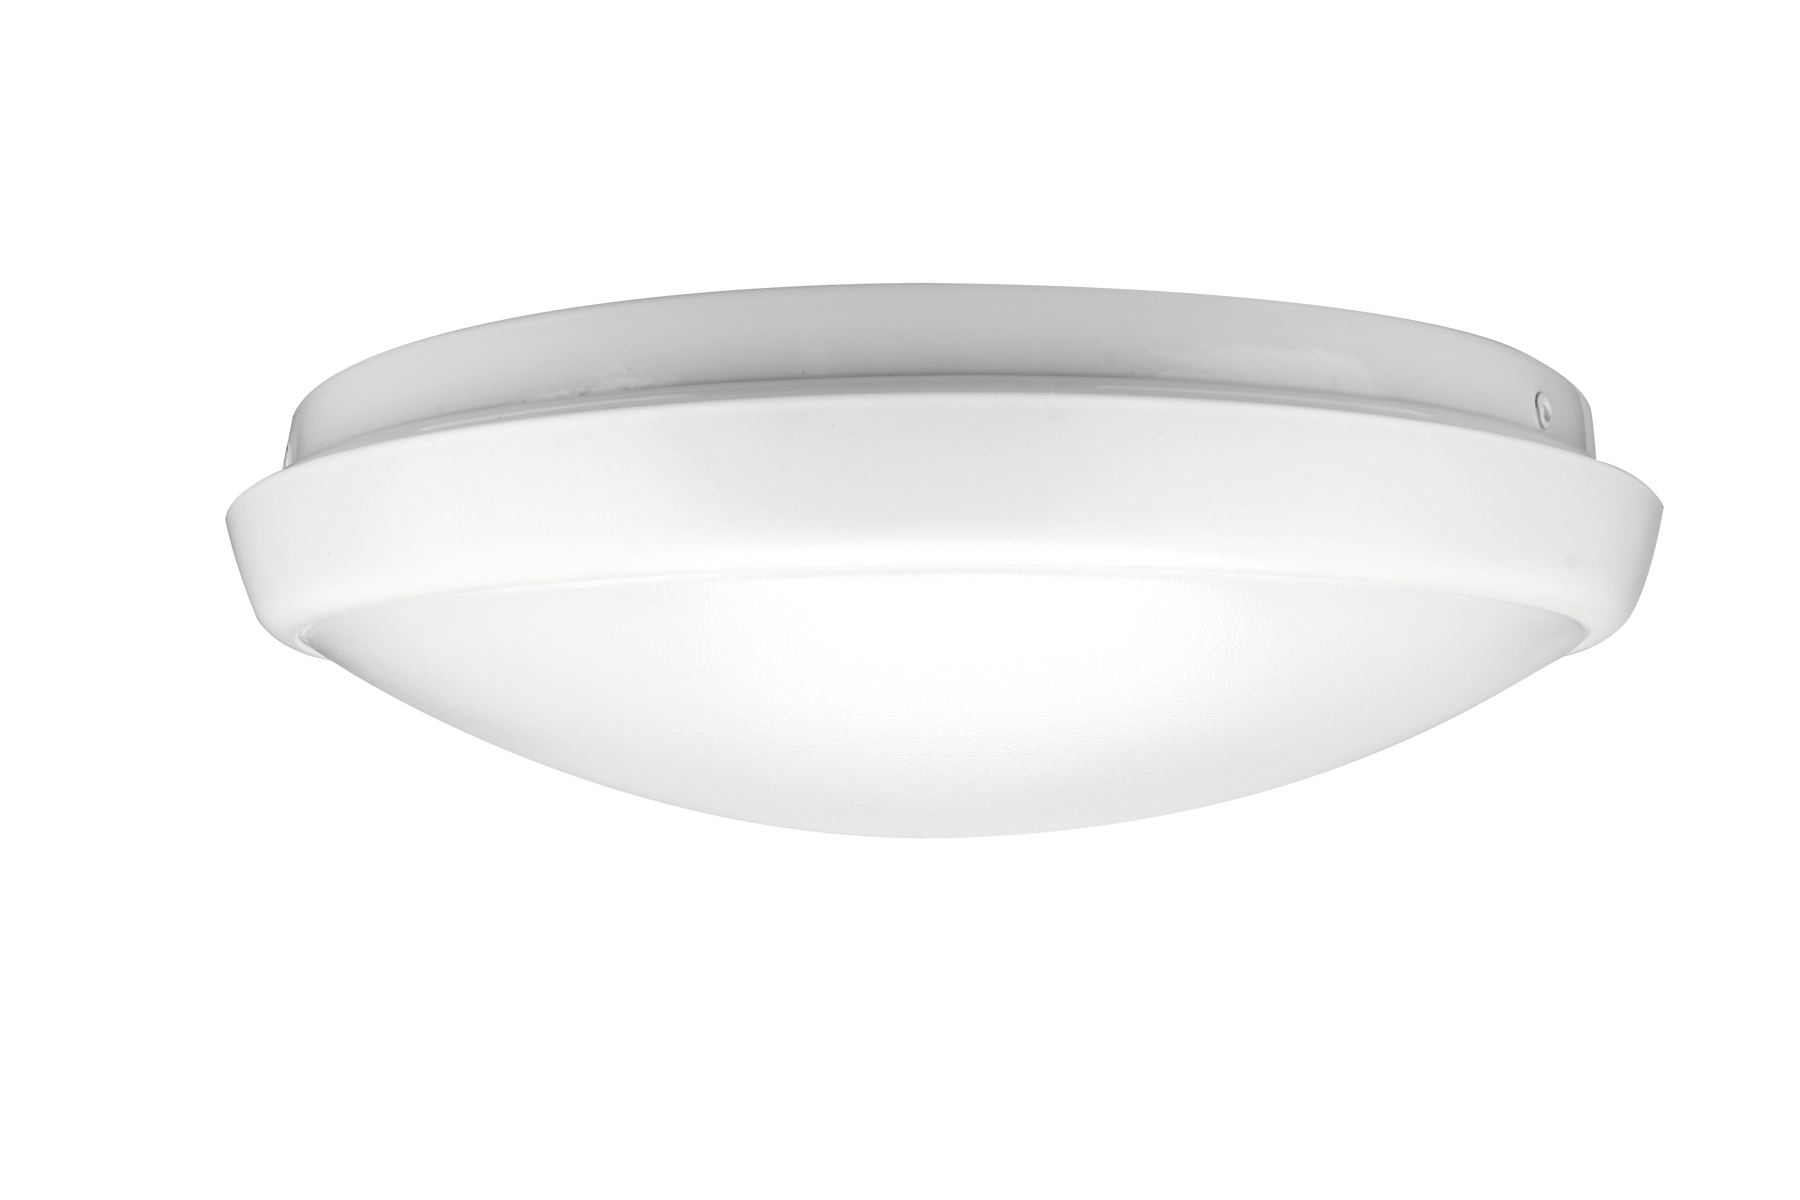 15W Ø250MM LED CEILING OYSTER LIGHT (AC1020-TC) - LEDLIGHTMELBOURNE